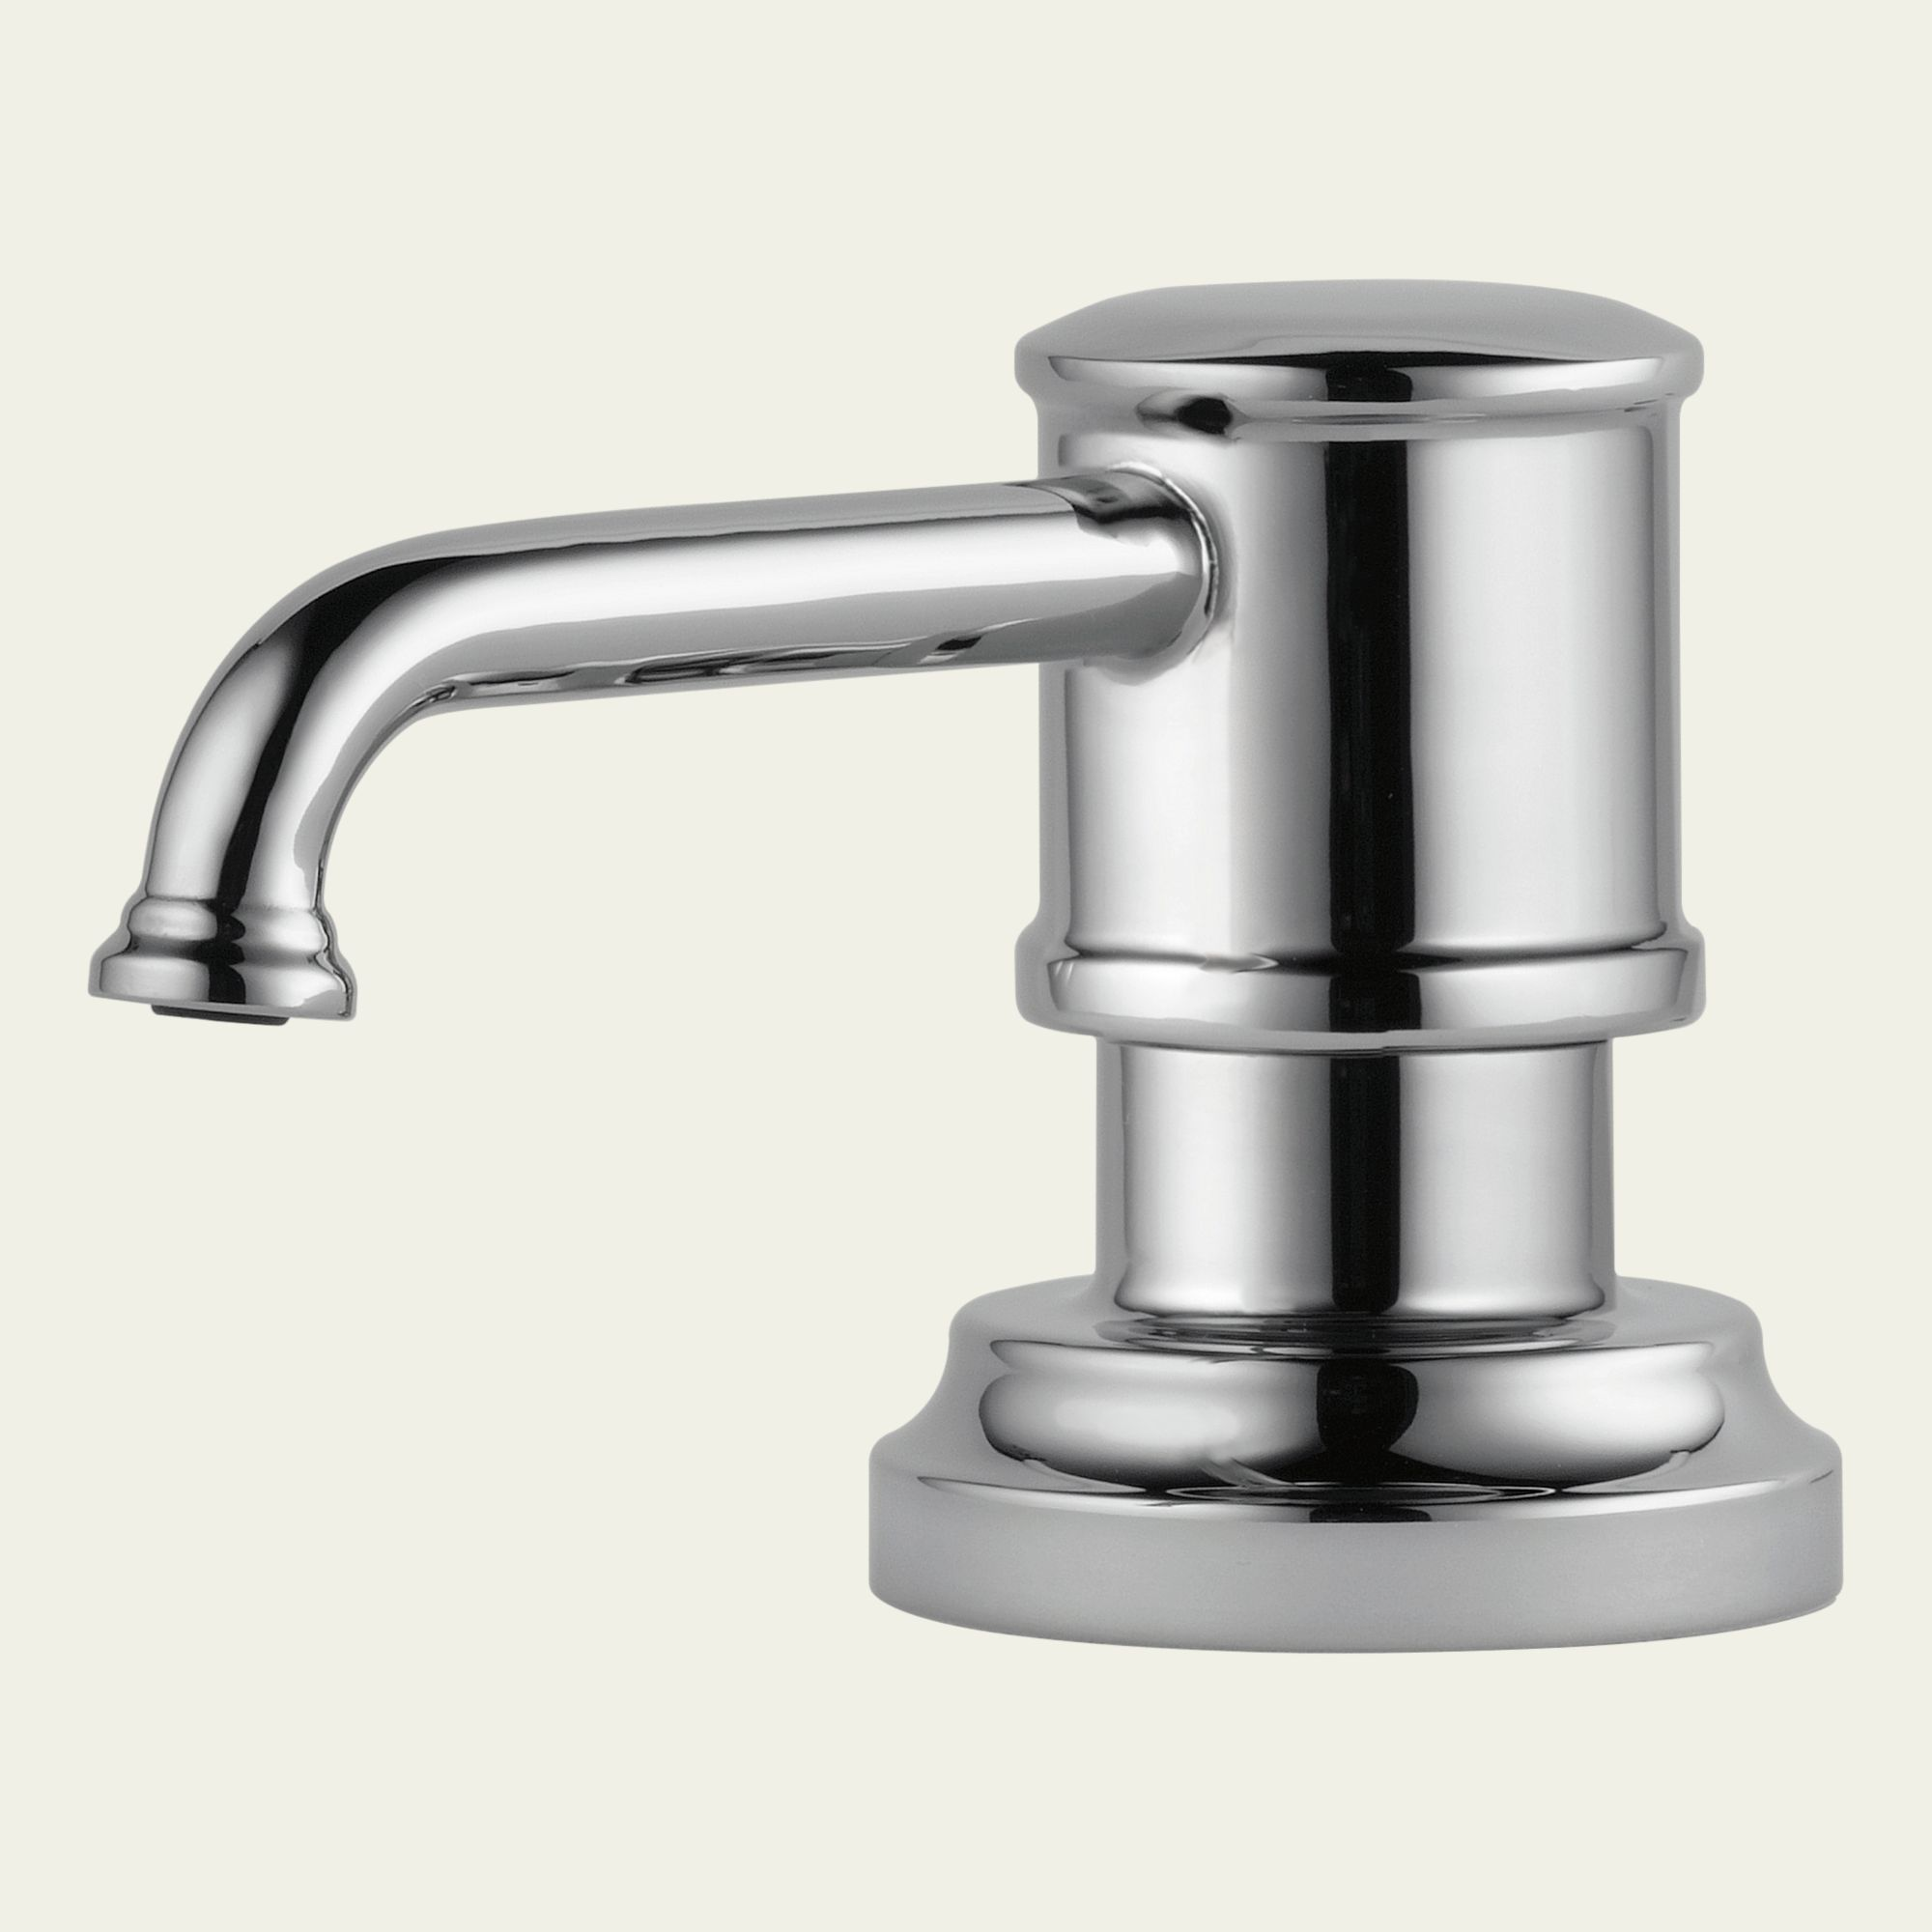 64025lf Brizo Single Handle Pull Down Kitchen Faucet With Smart Touch Technology 64025lf